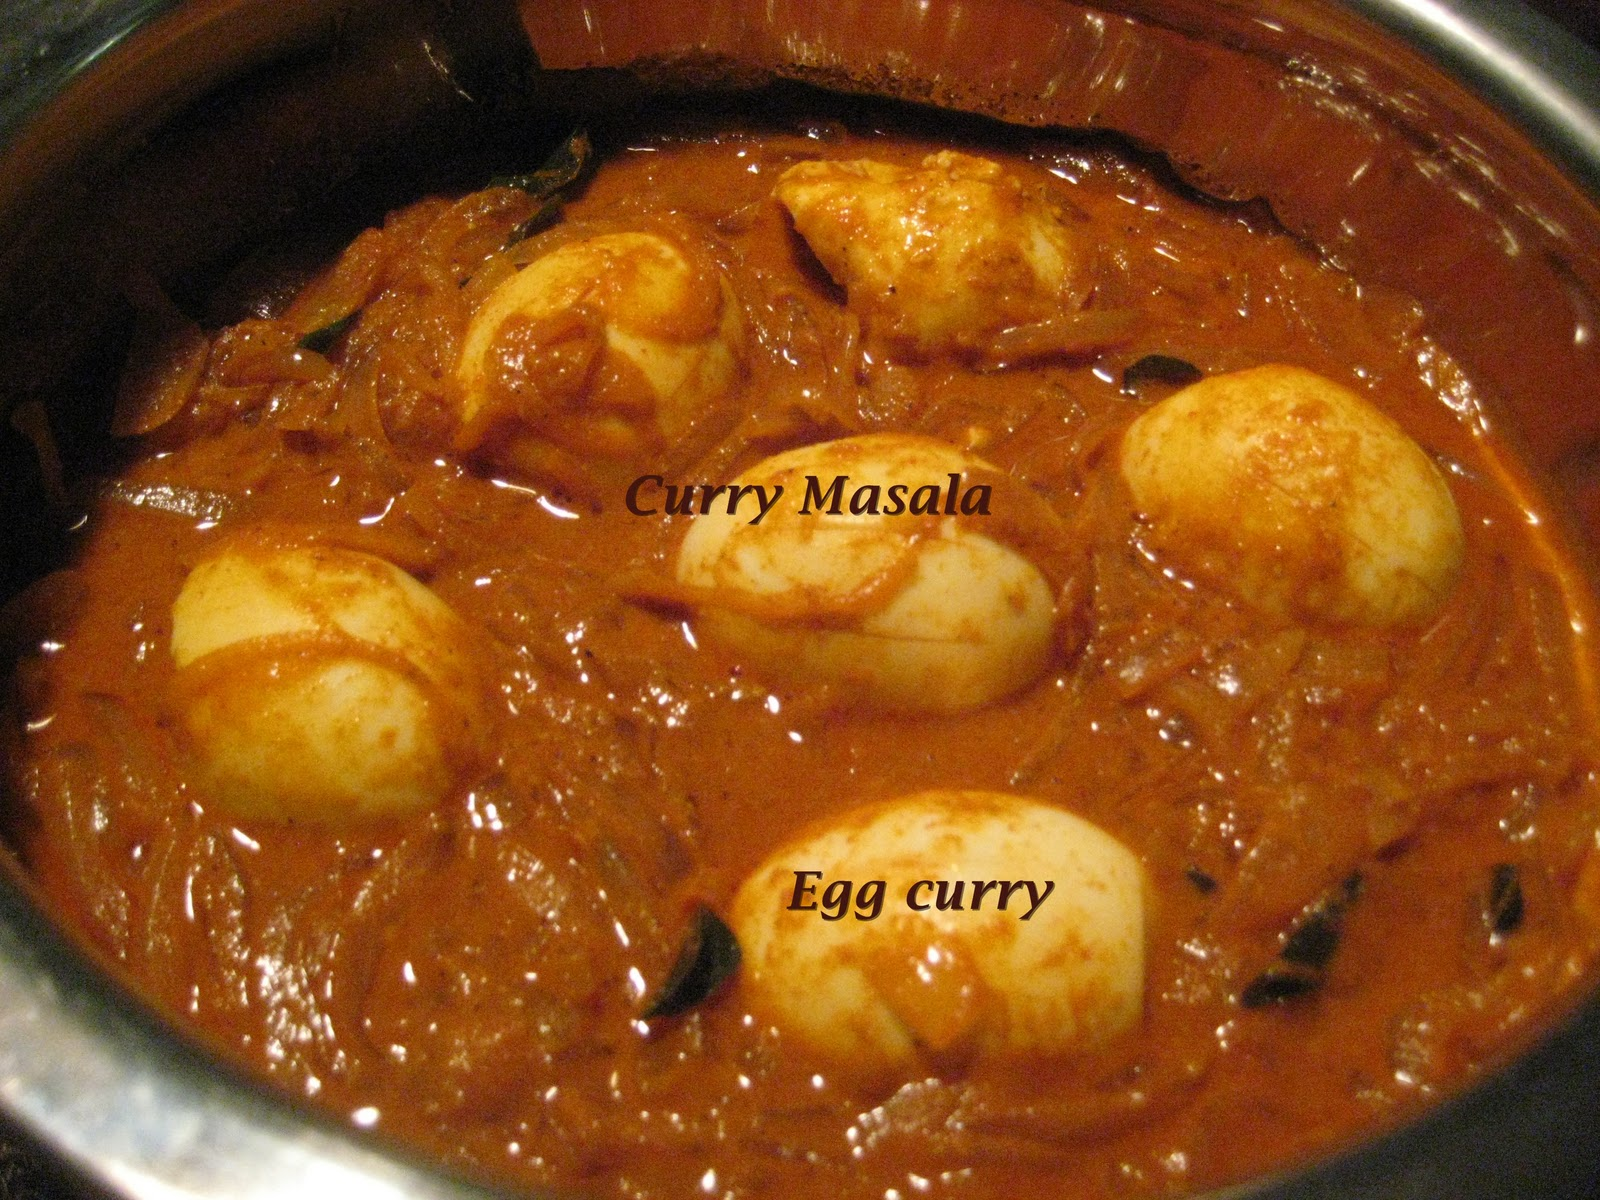 Curry Masala: Simple Spicy Egg Curry